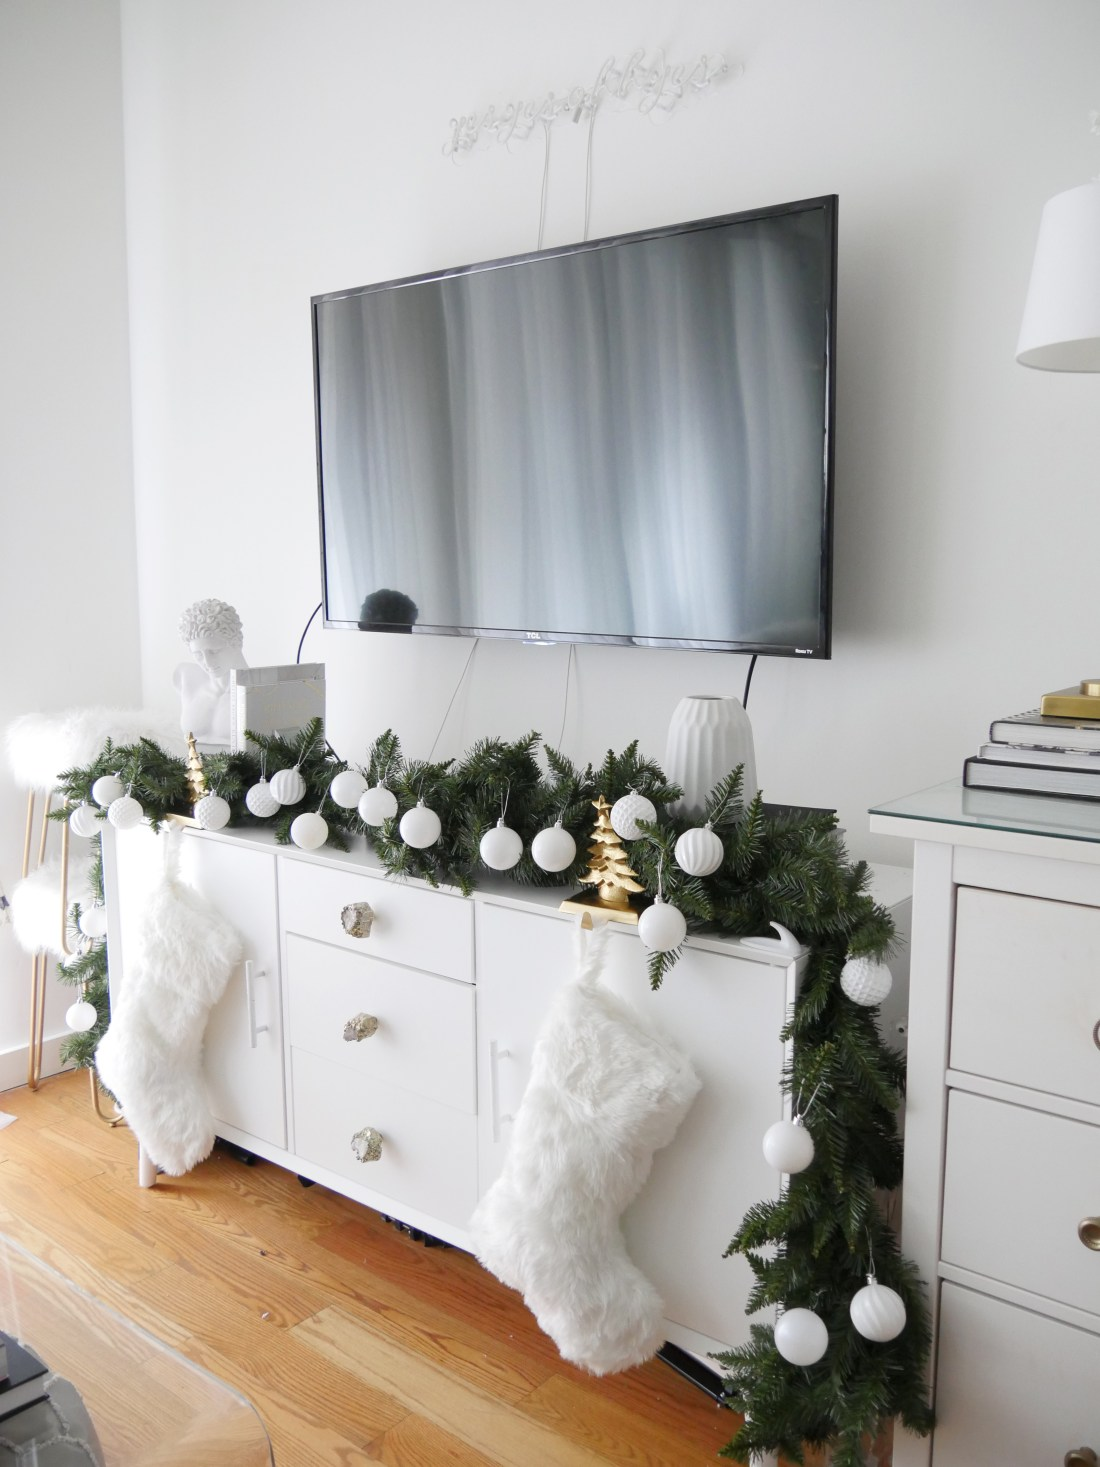 Learn how to decorate your home for the holidays/ for Christmas without having a tree. #Christmasdecorations #christmasdecordiy #christmasdecor #holidaydecor #holidaywreaths